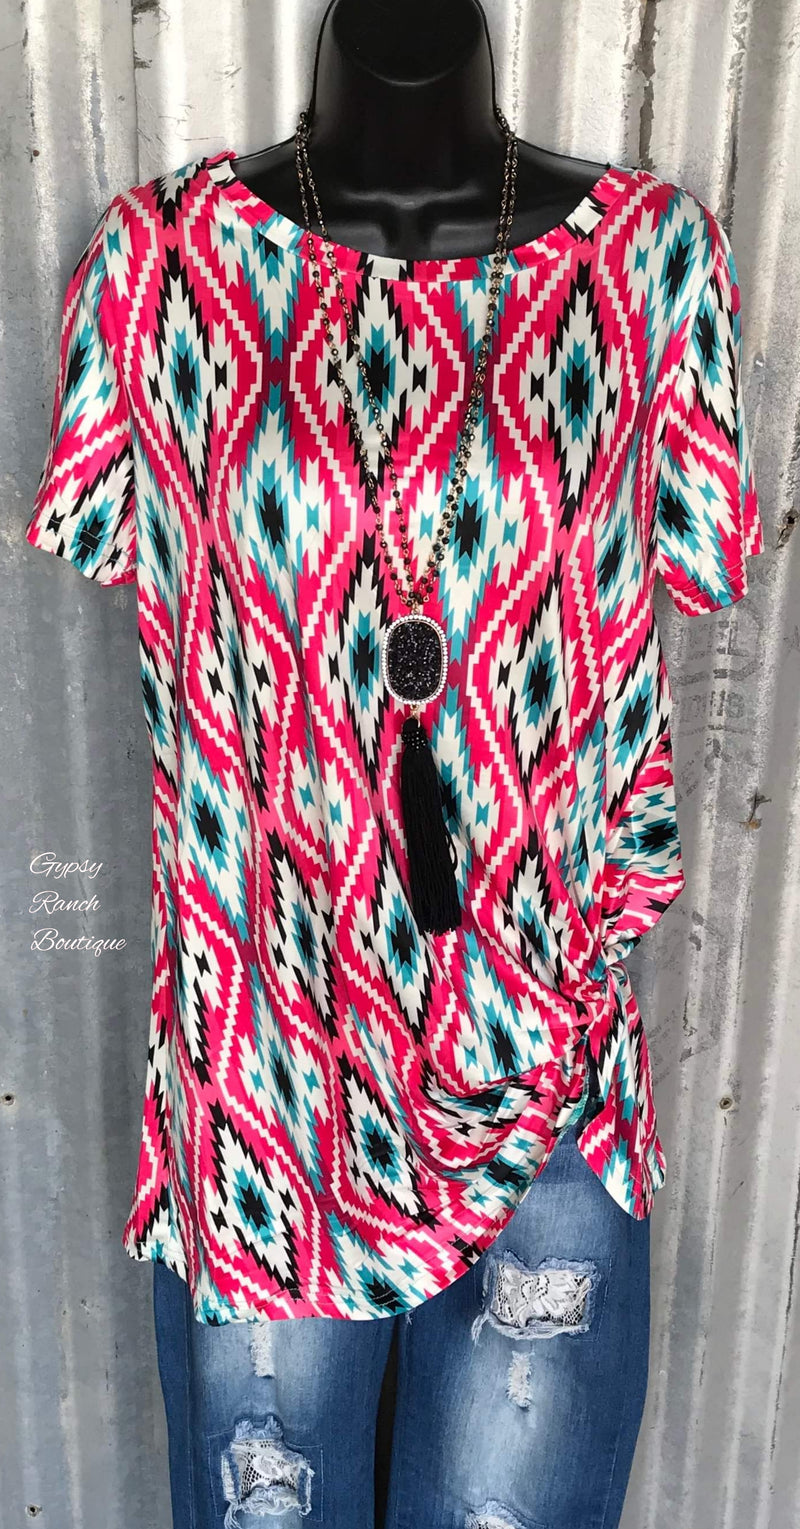 Epic Tribal Knot Top - Also in Plus Size